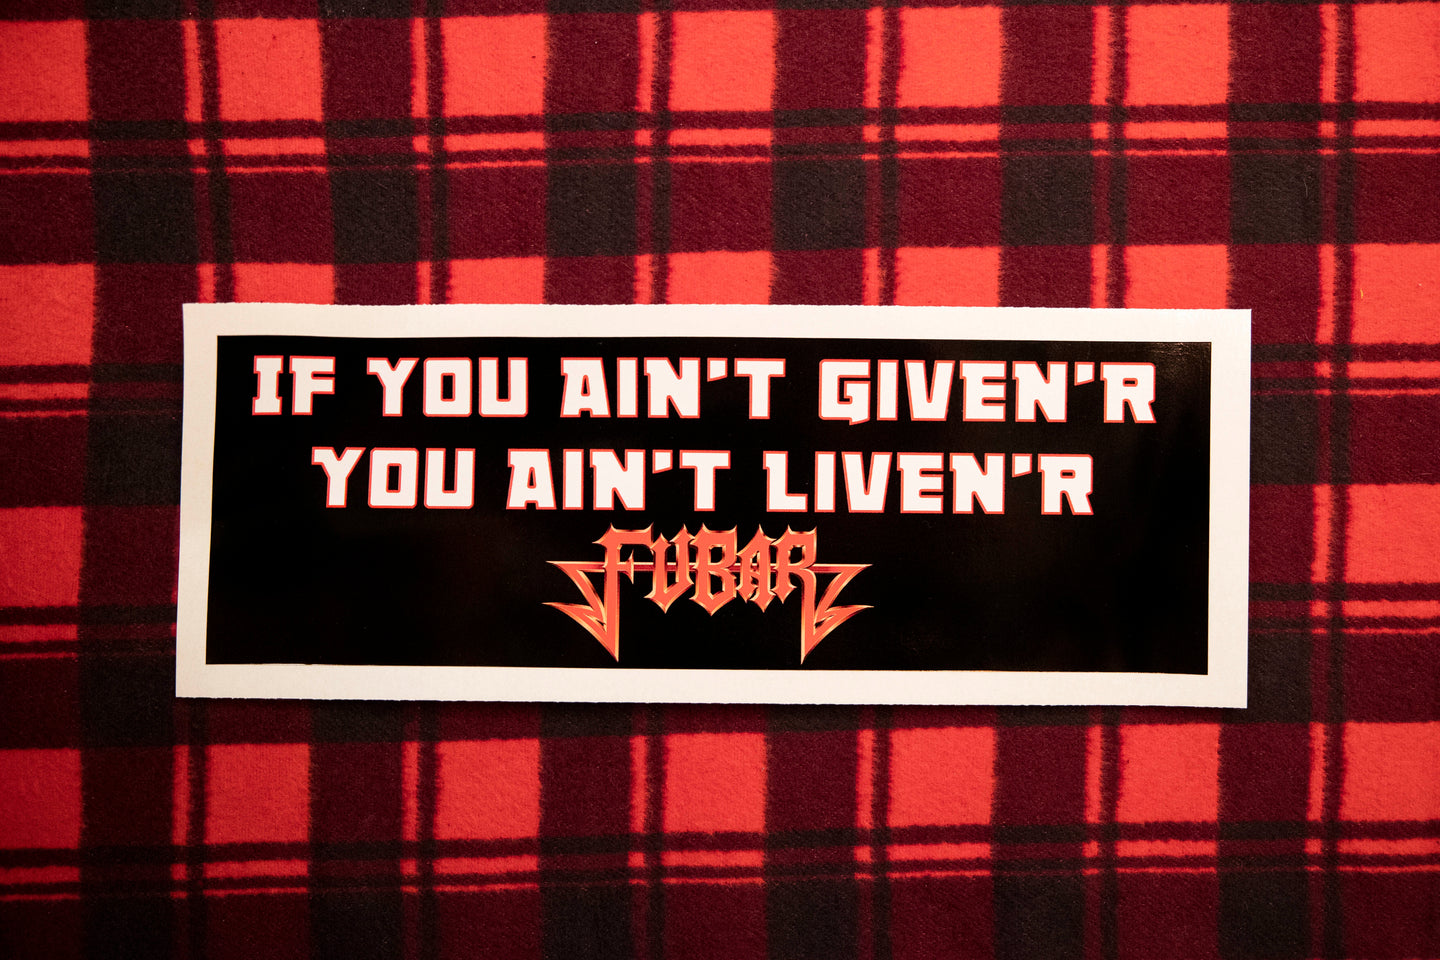 FUBAR - If You Ain't Given'r Bumper Sticker 4 by 15 Inces